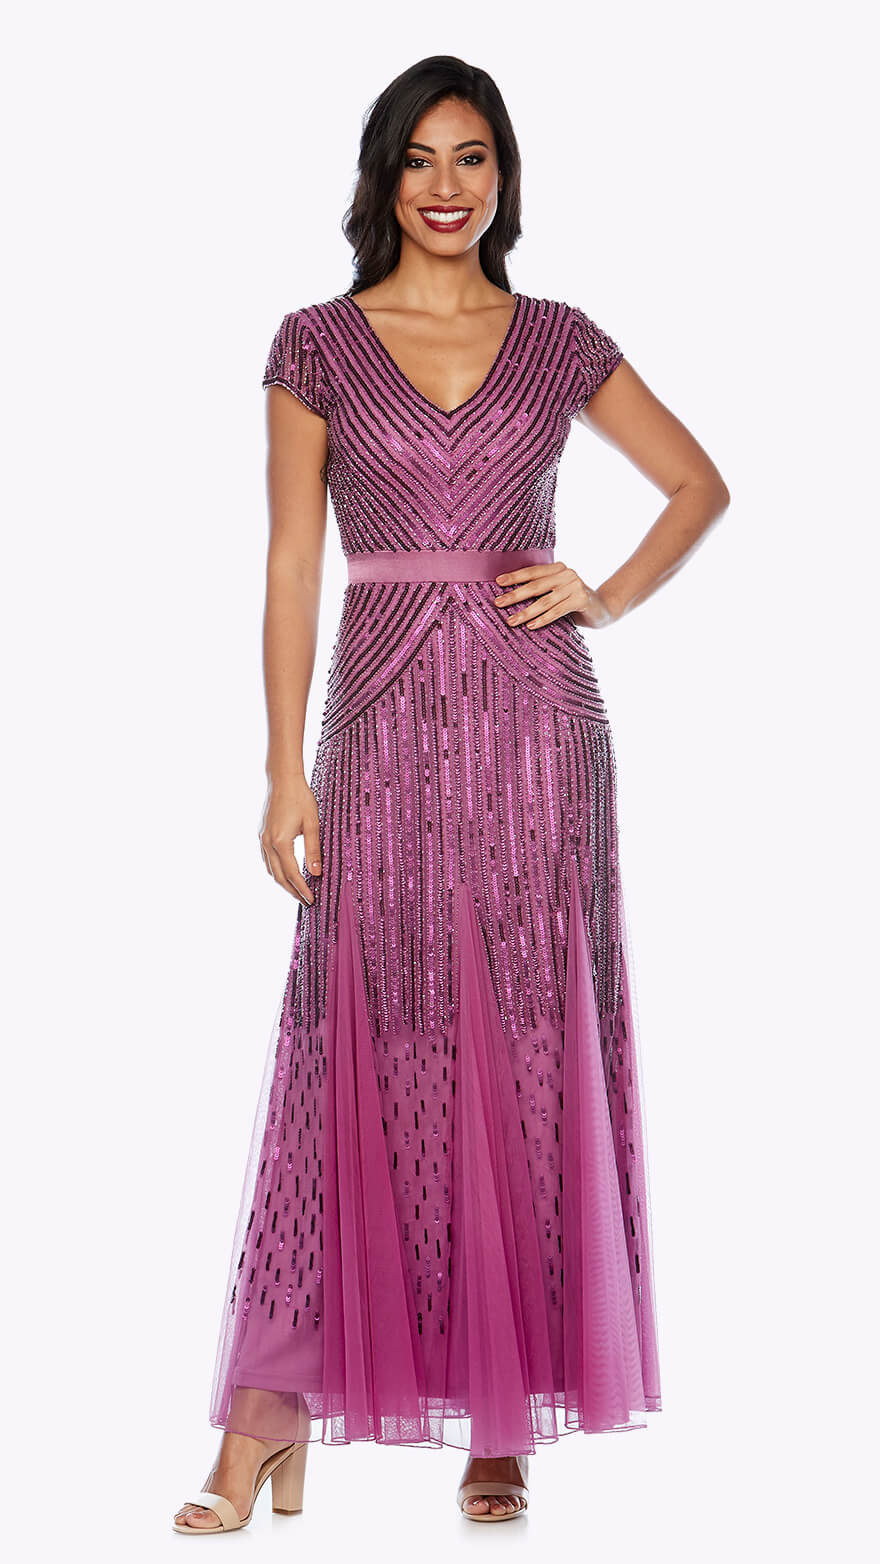 Z0002 Long cap sleeve beaded gown with satin waistband and fishtail skirt